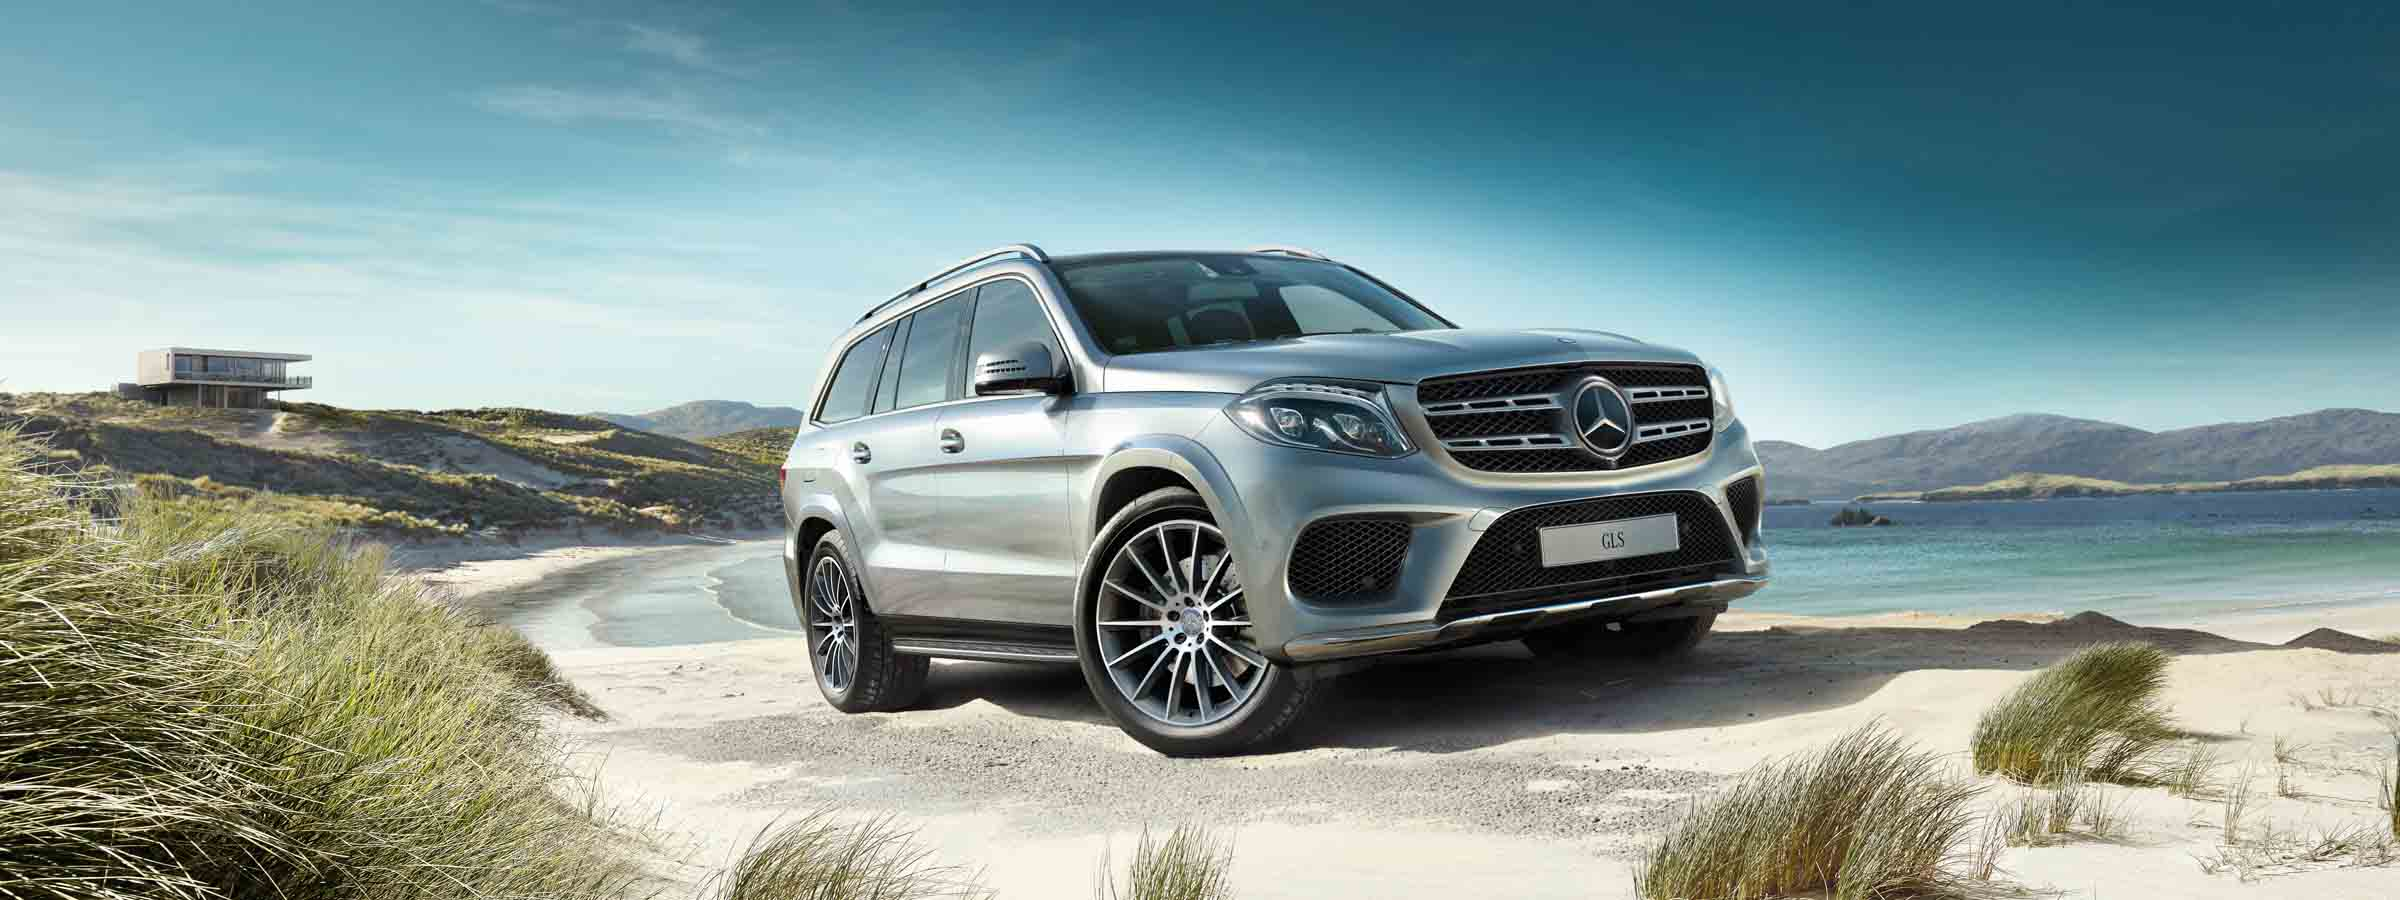 2018 gls suv mercedes benz. Black Bedroom Furniture Sets. Home Design Ideas